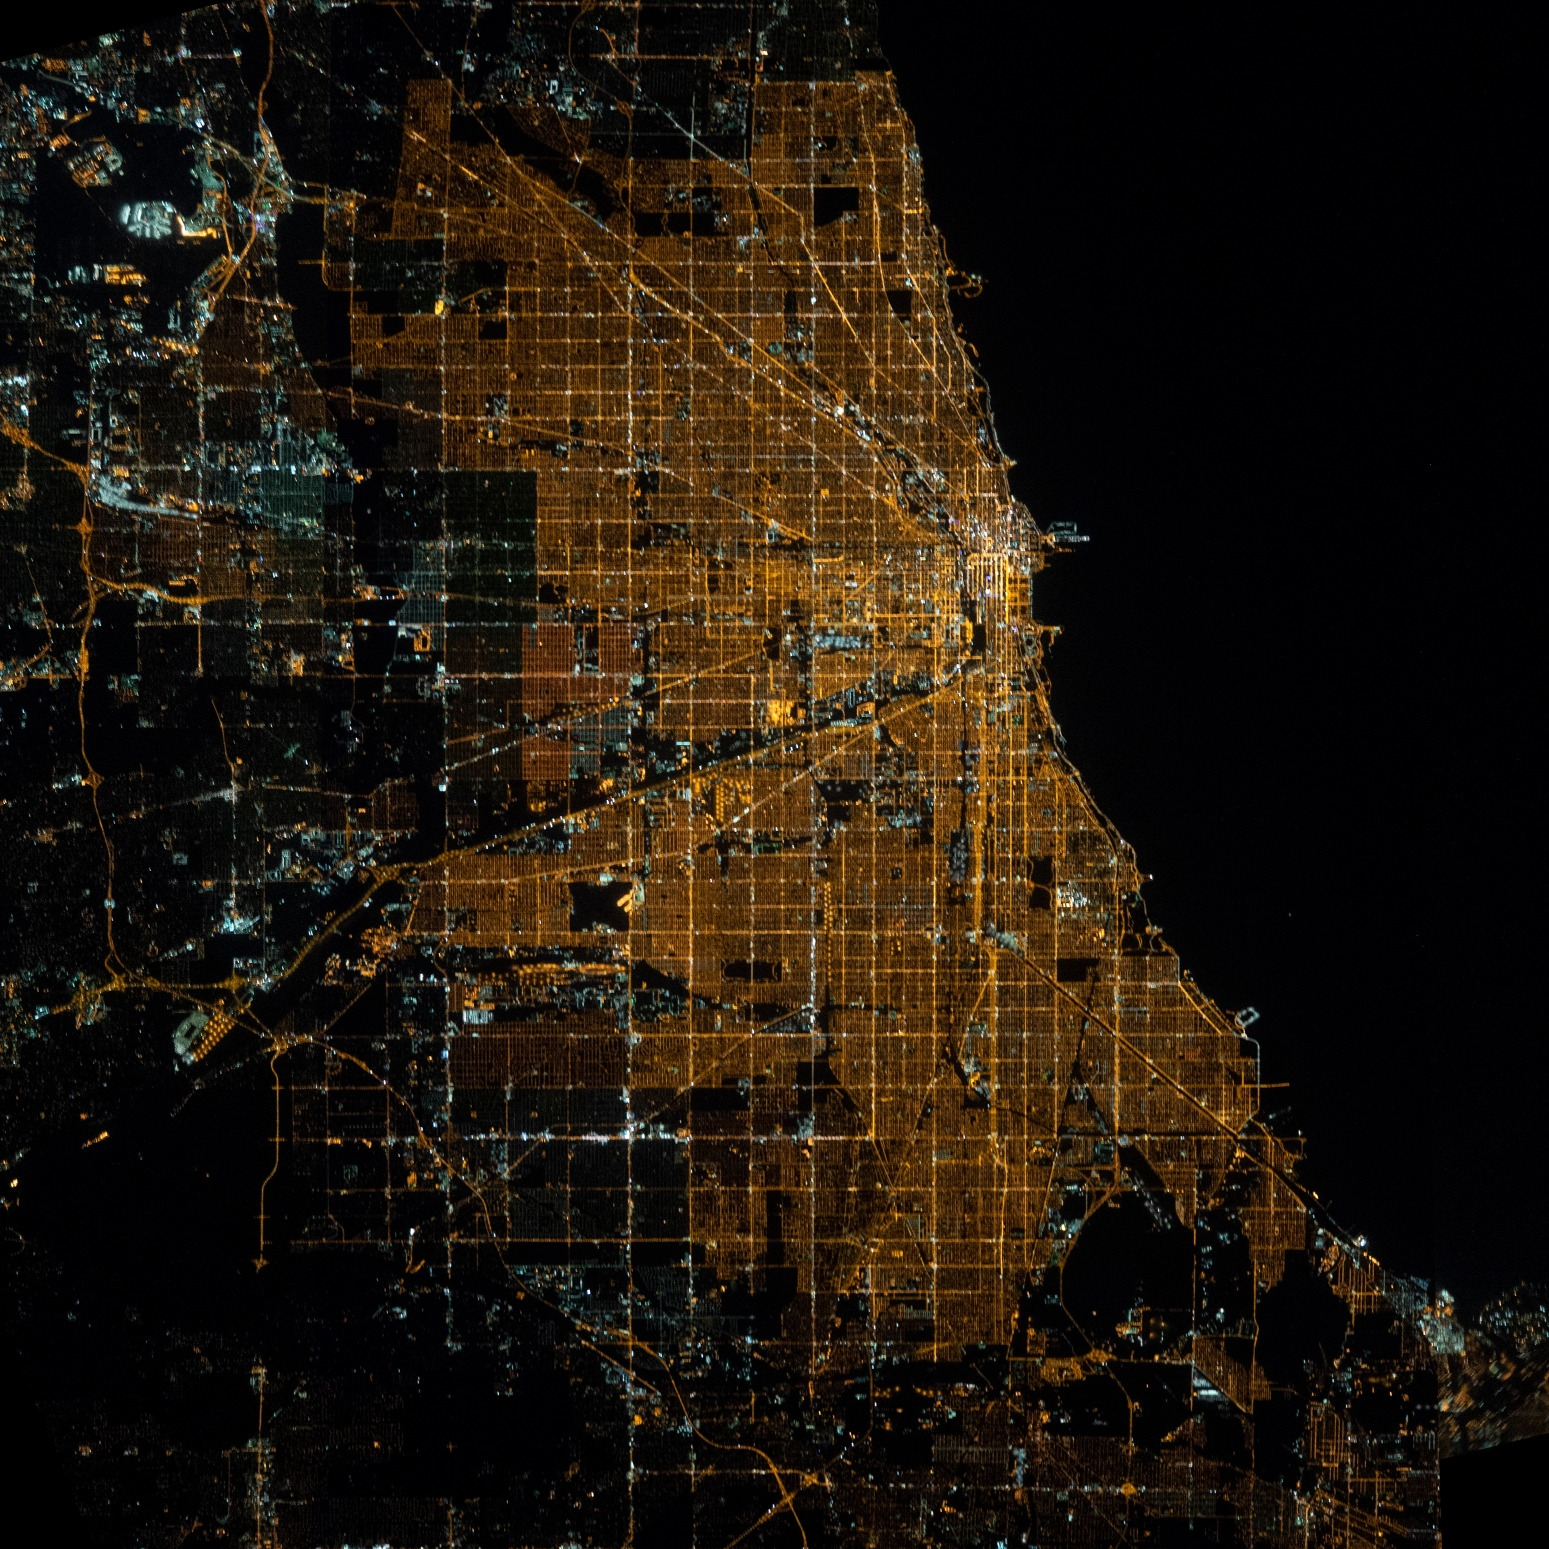 A bird's eye view of Chicago at night, with the city's gridline highly visible.